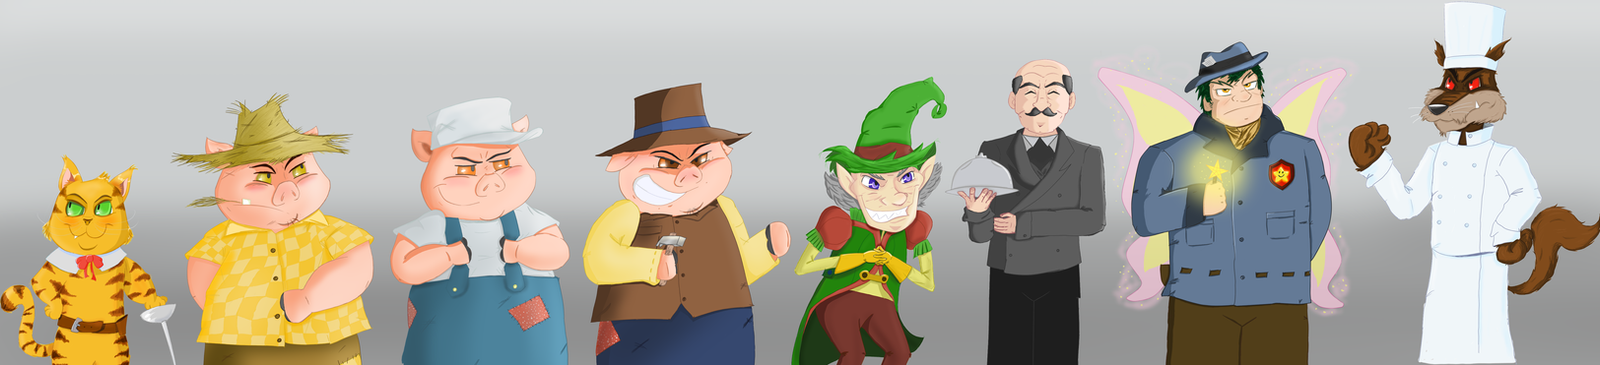 Game project characters by Guilll